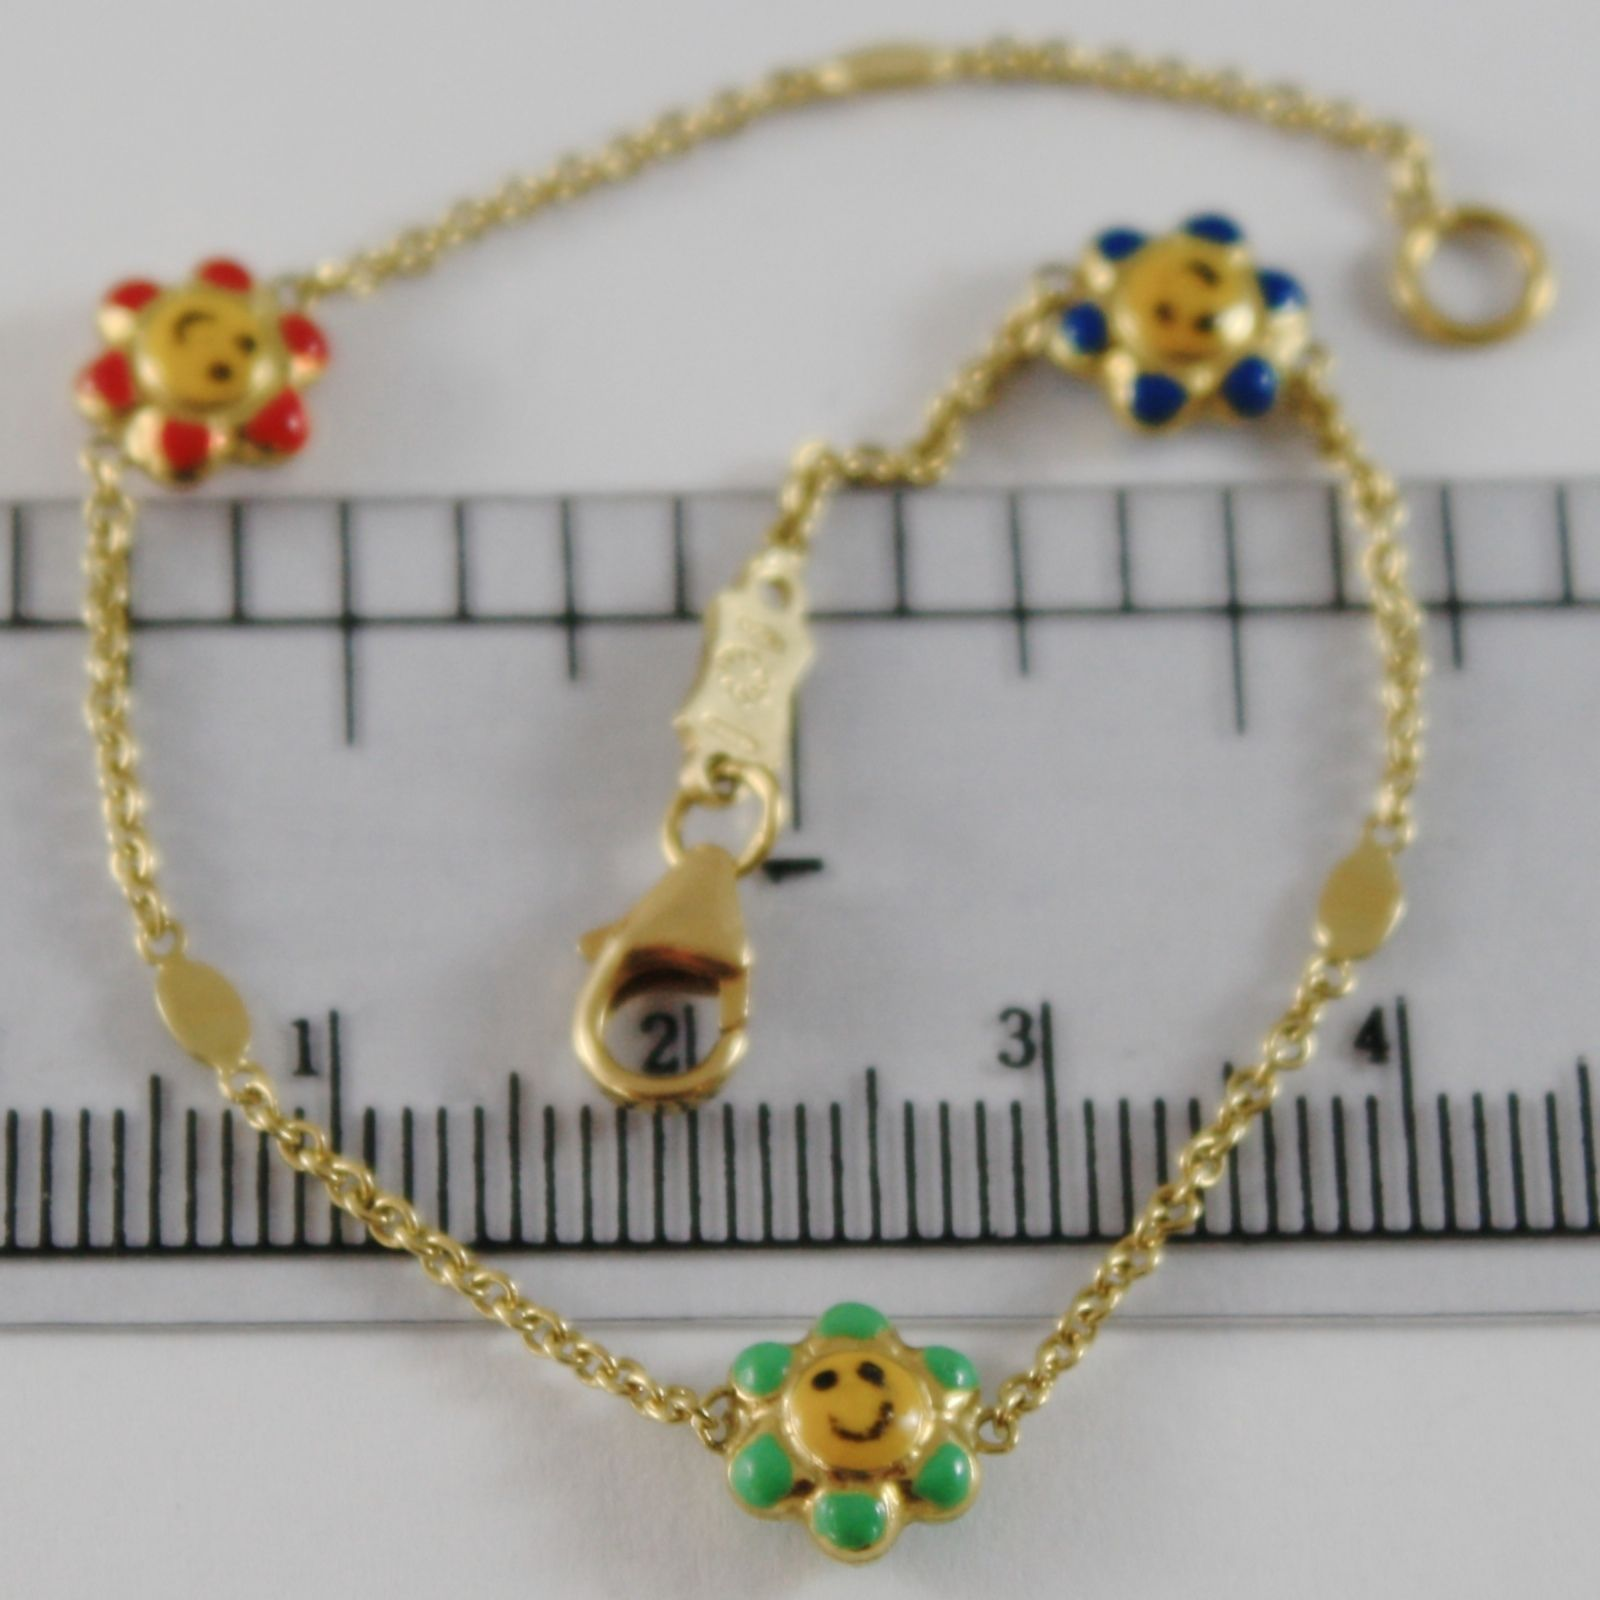 18K YELLOW GOLD GIRL BRACELET 6.70 INCH. GLAZED FLOWER, ENAMEL, MADE IN ITALY